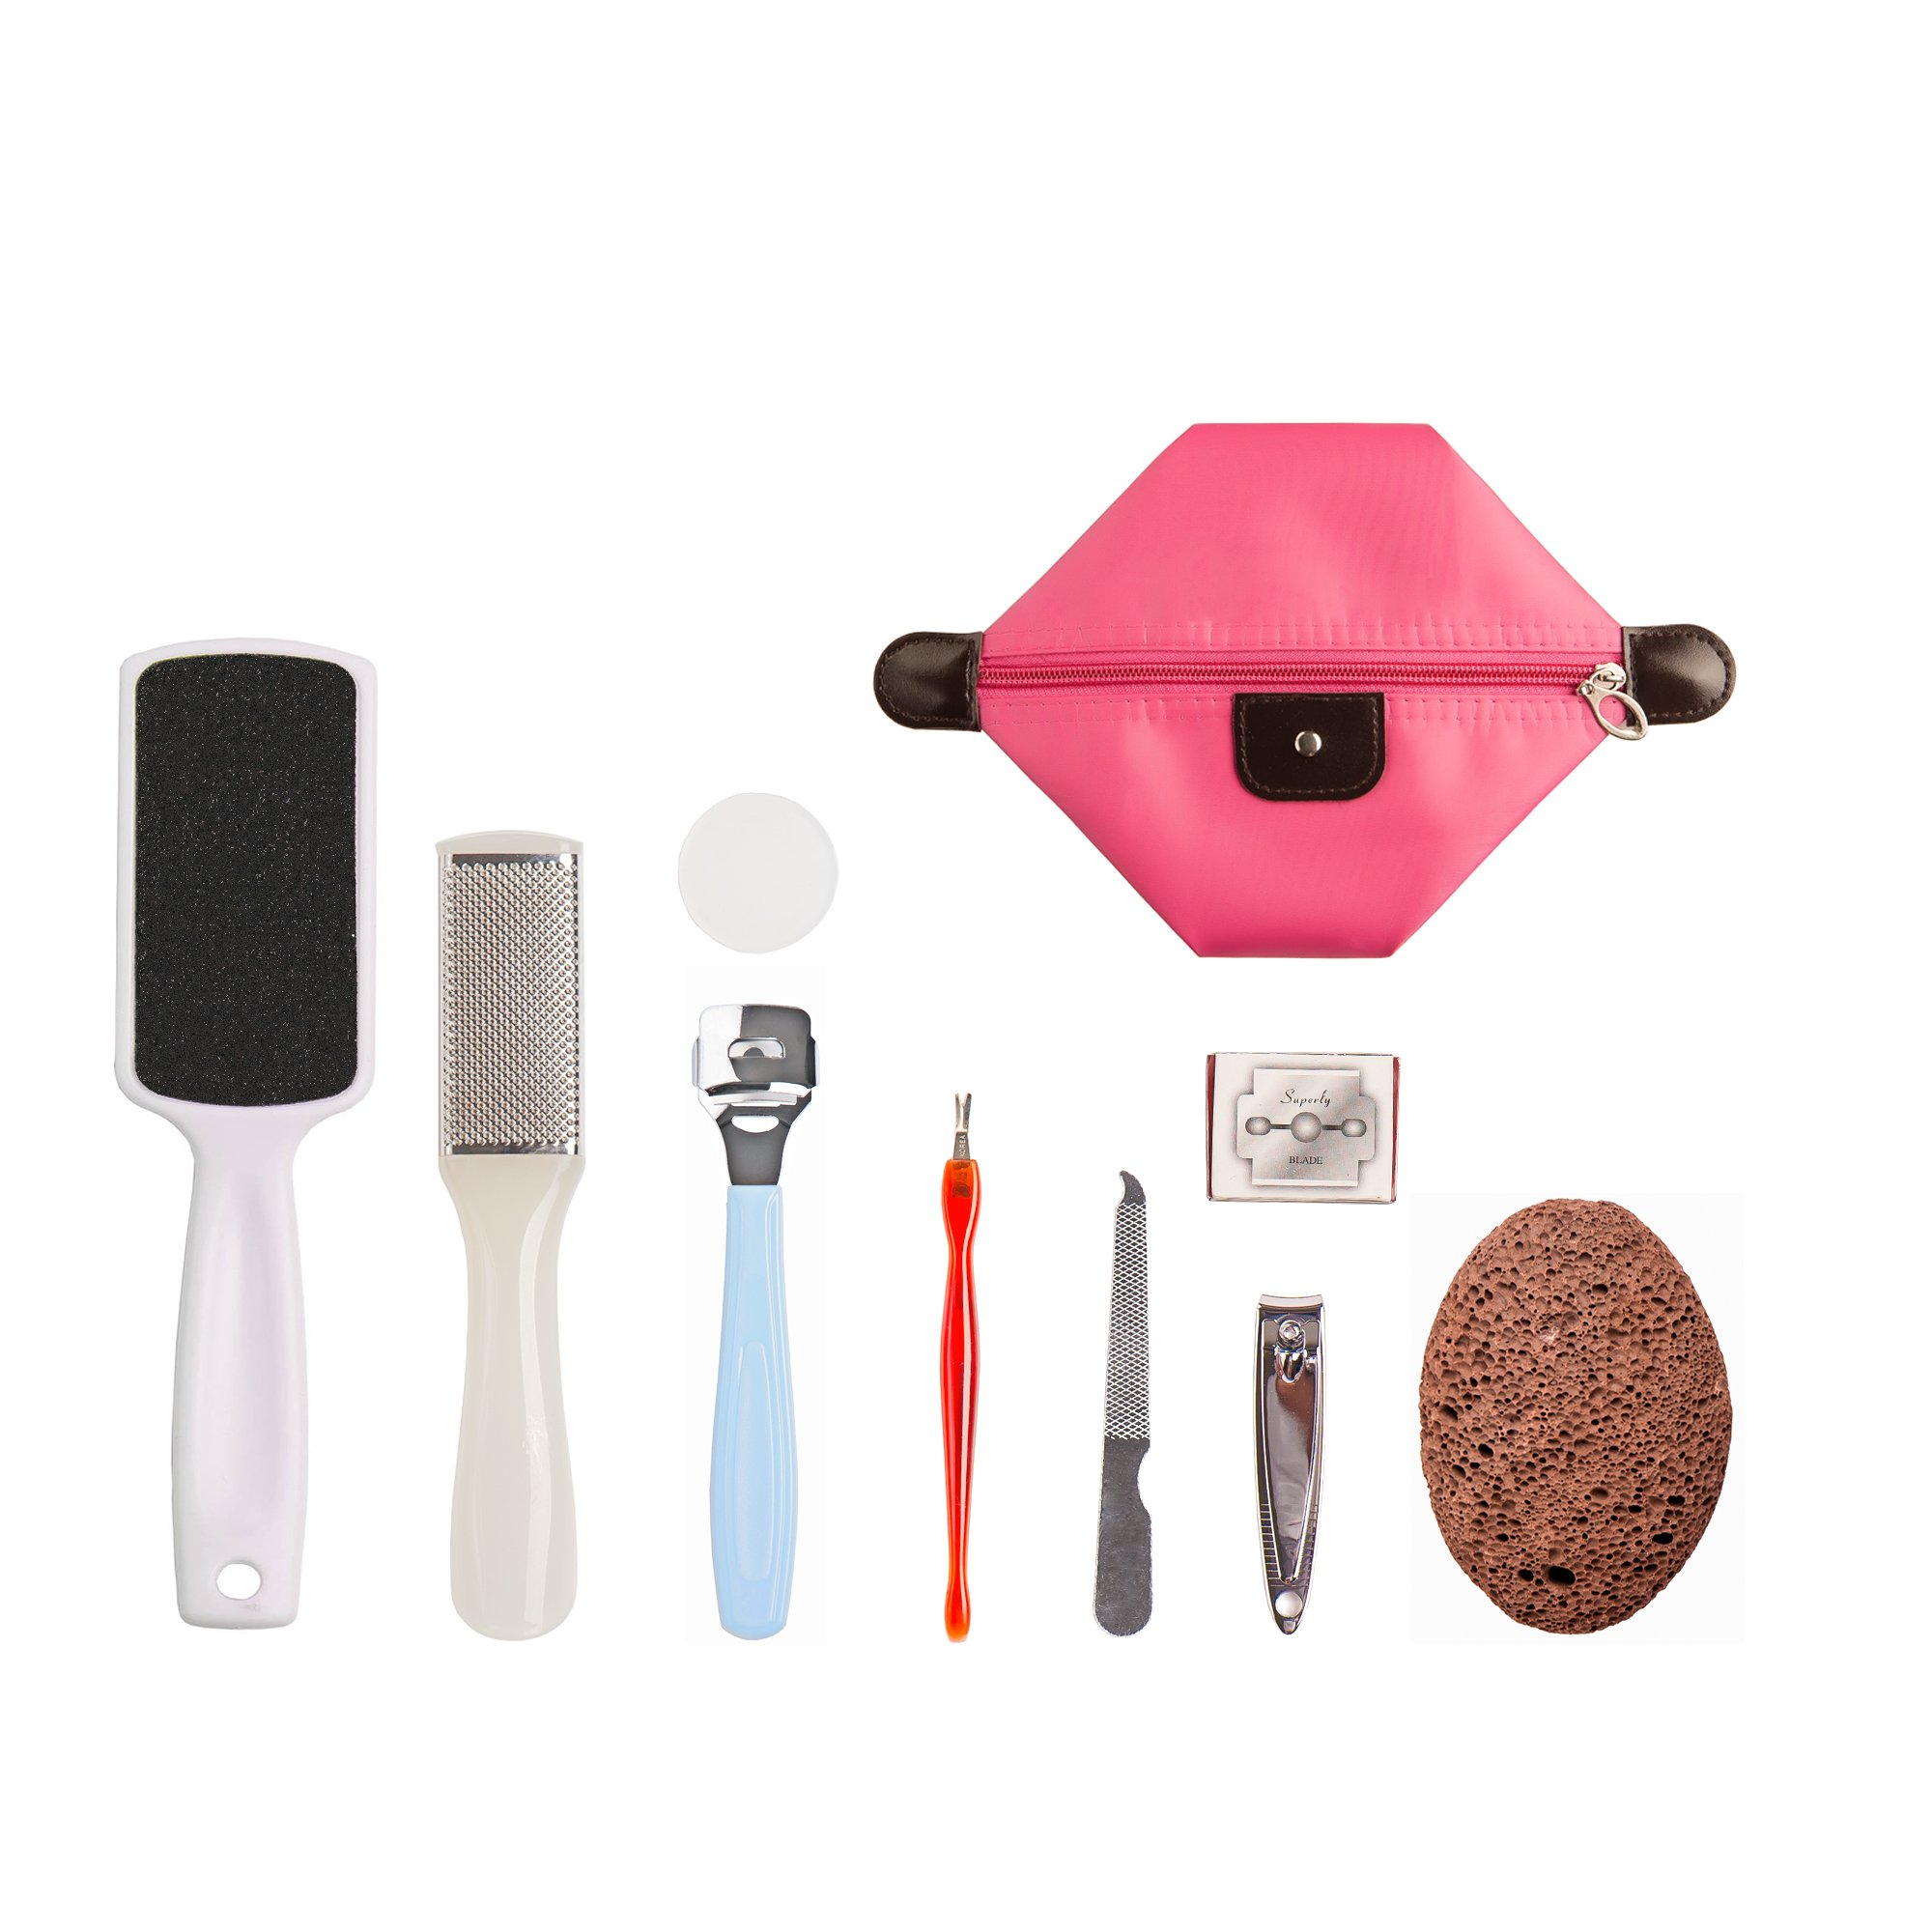 Professional Foot File  with Volcanic Pumice Stone/Rasp, Cristalbox 10 in 1 Best  Pedicure Tools Callus Remover for Removing Hard, Cracked, Dead Skin Cells, Home Pedicure